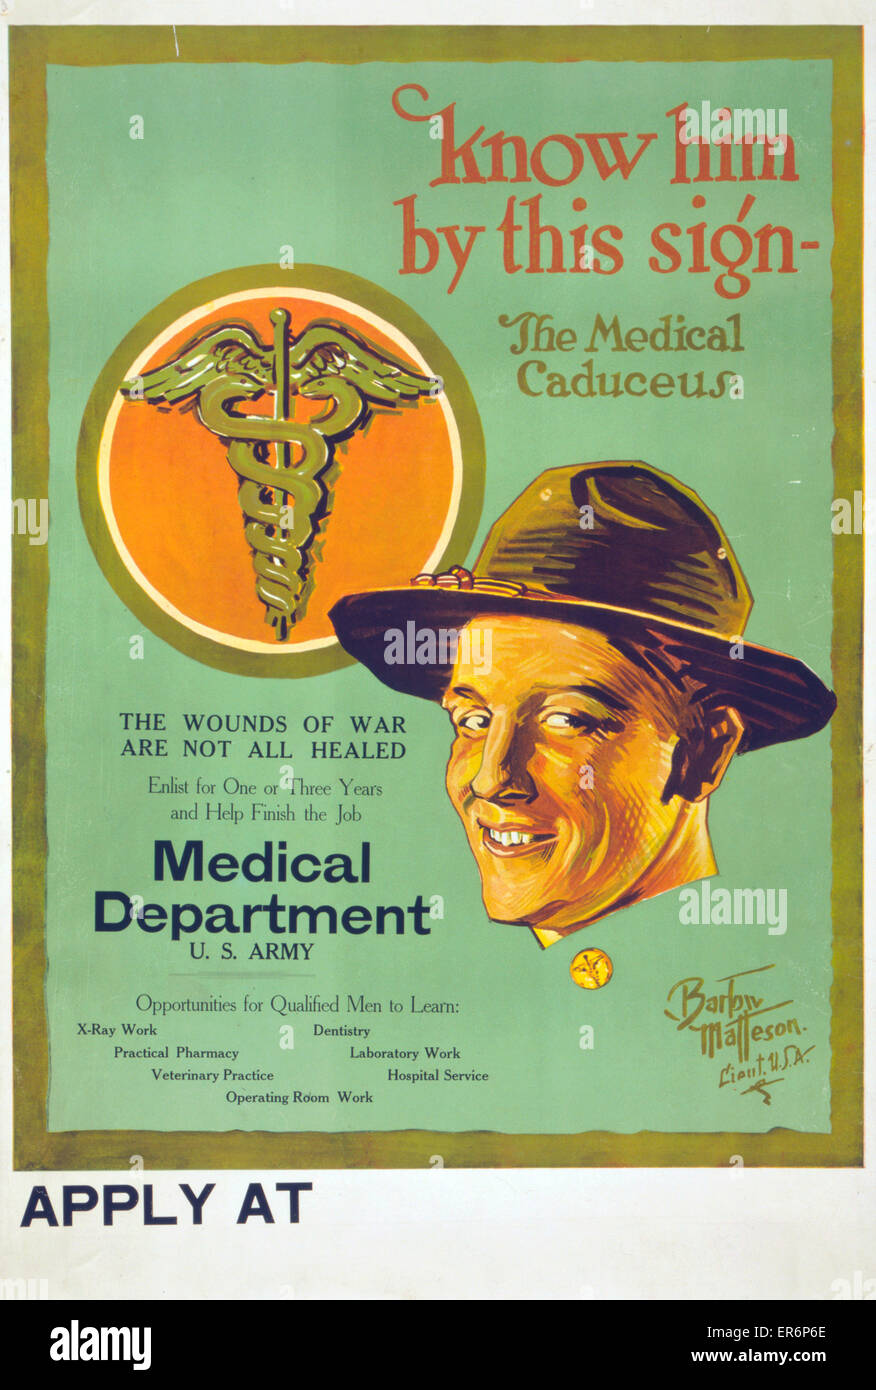 Know him by this sign - the medical caduceus The wounds of war are not all healed . US Army Medical Department recruiting - Stock Image